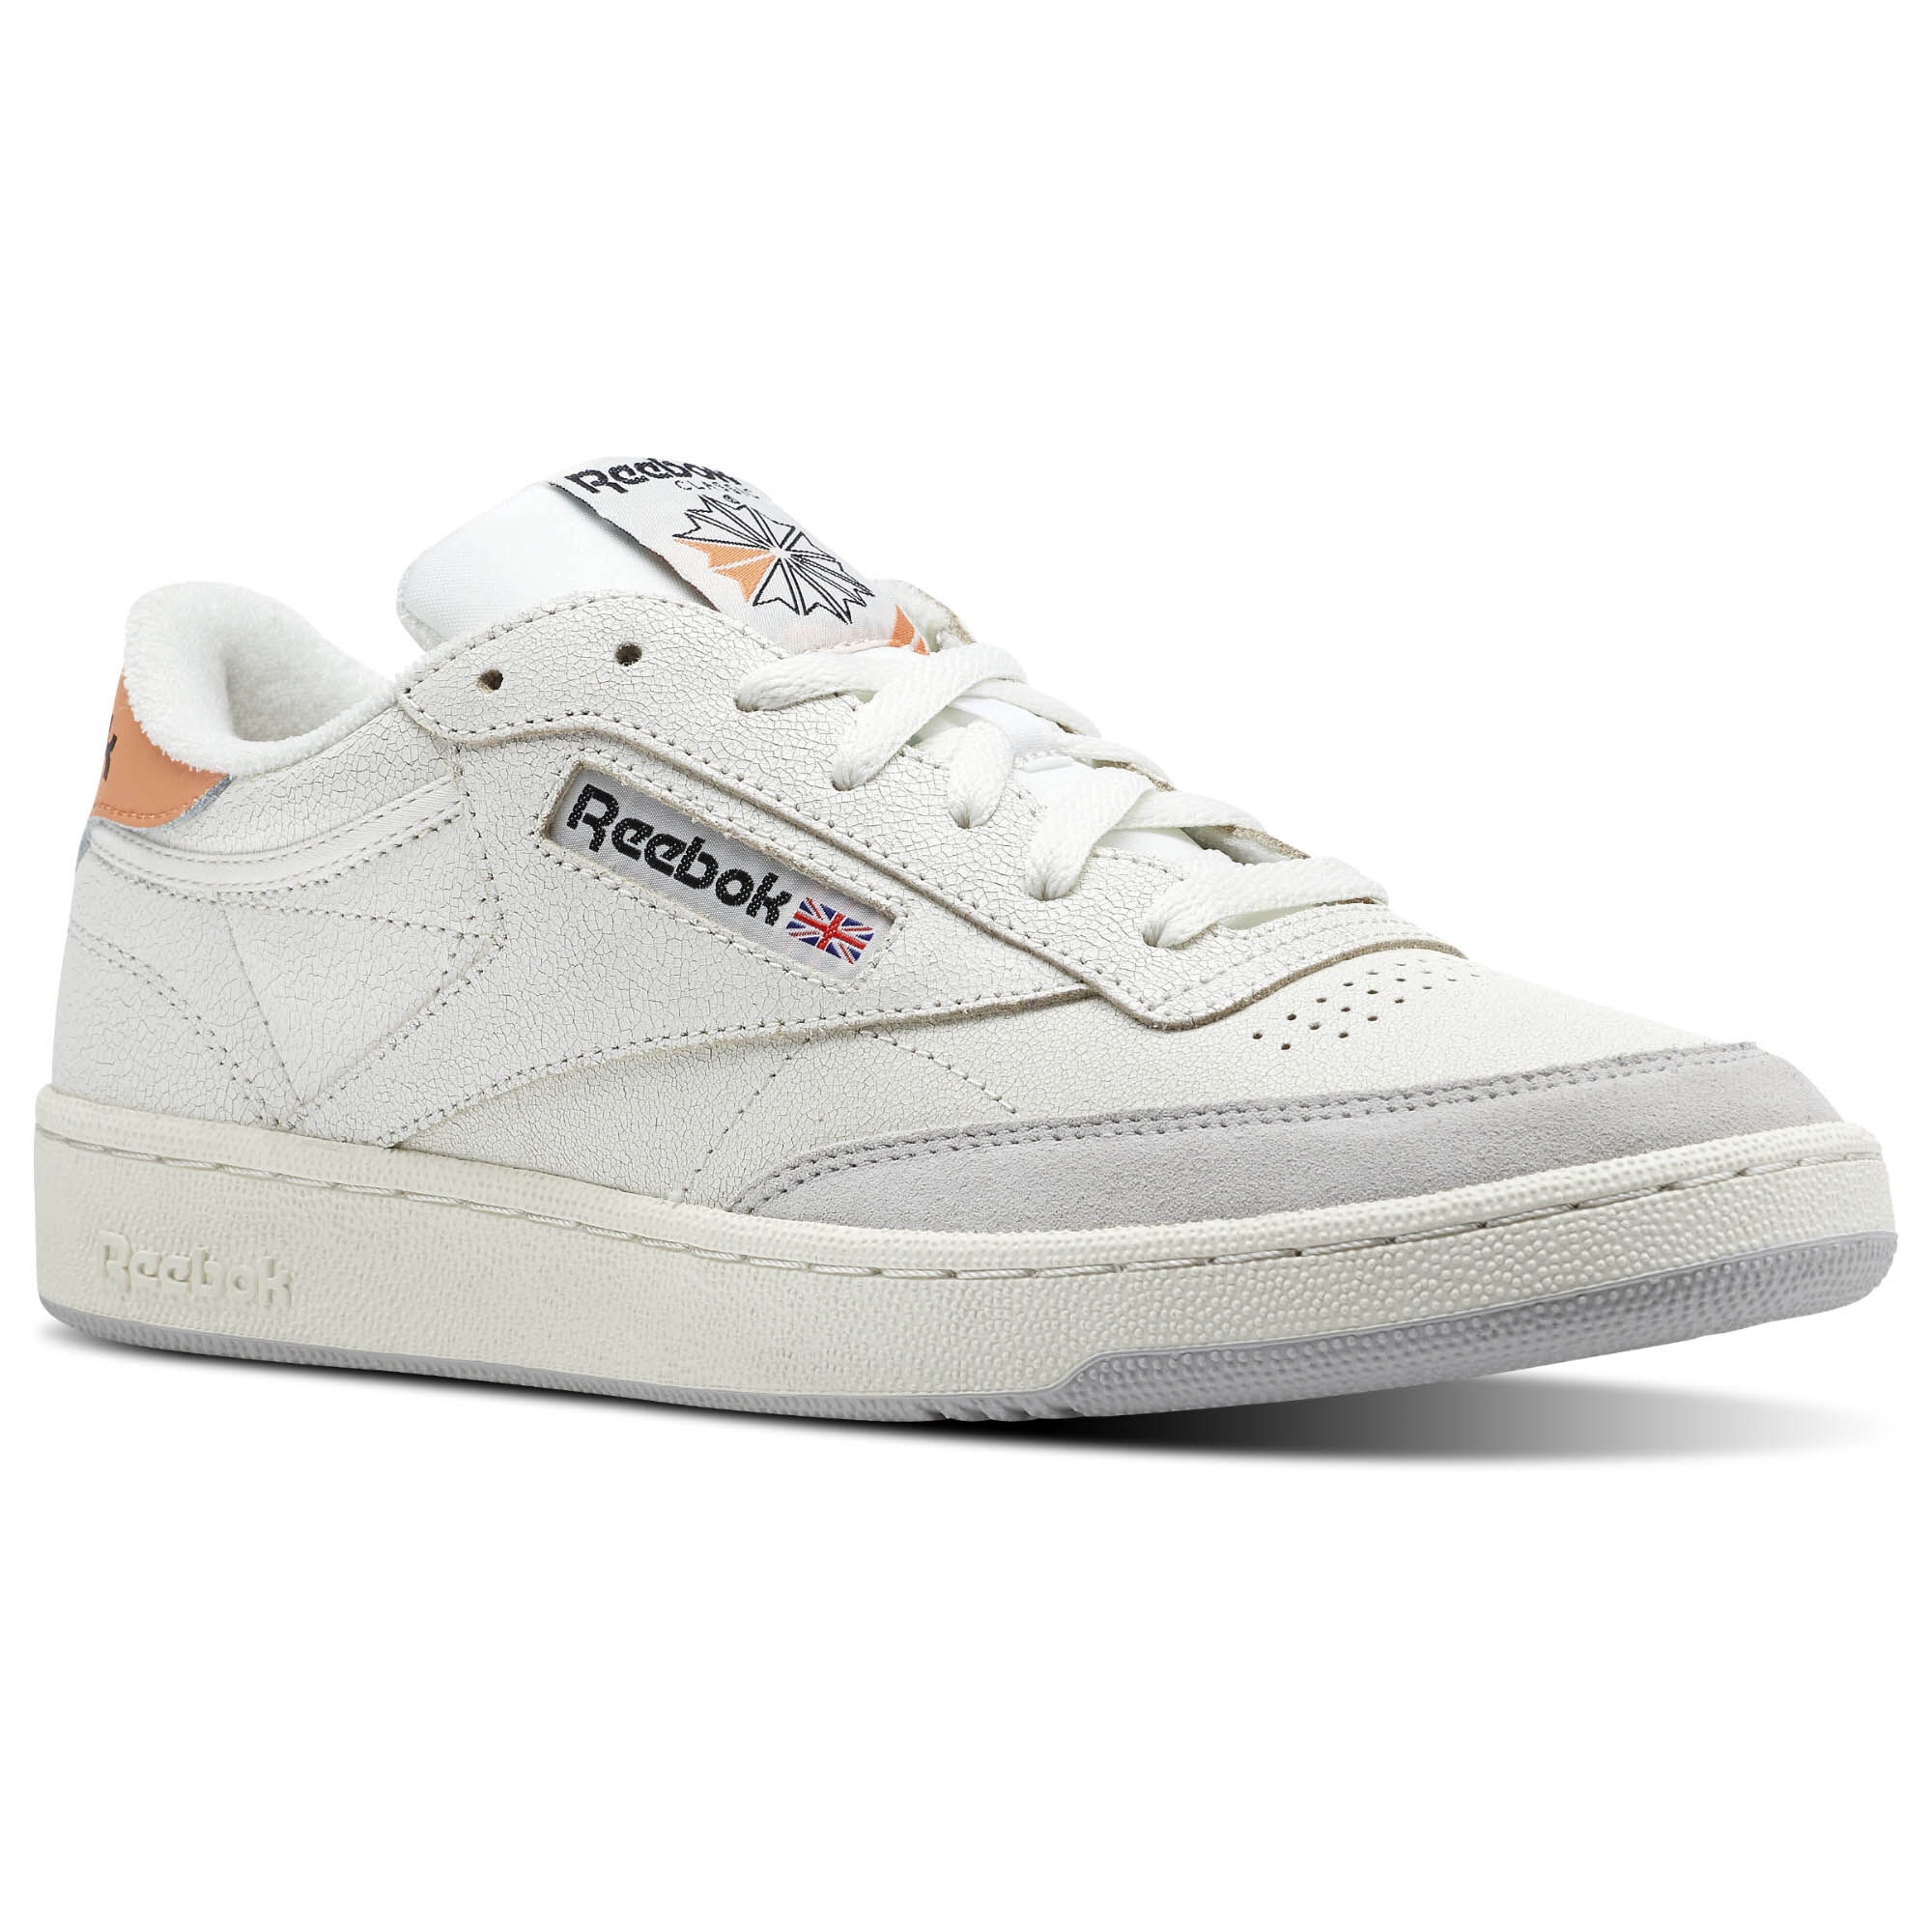 Reebok - Reebok Club C 85 FT Chalk/Sunbaked Orange/Skull Grey/Black